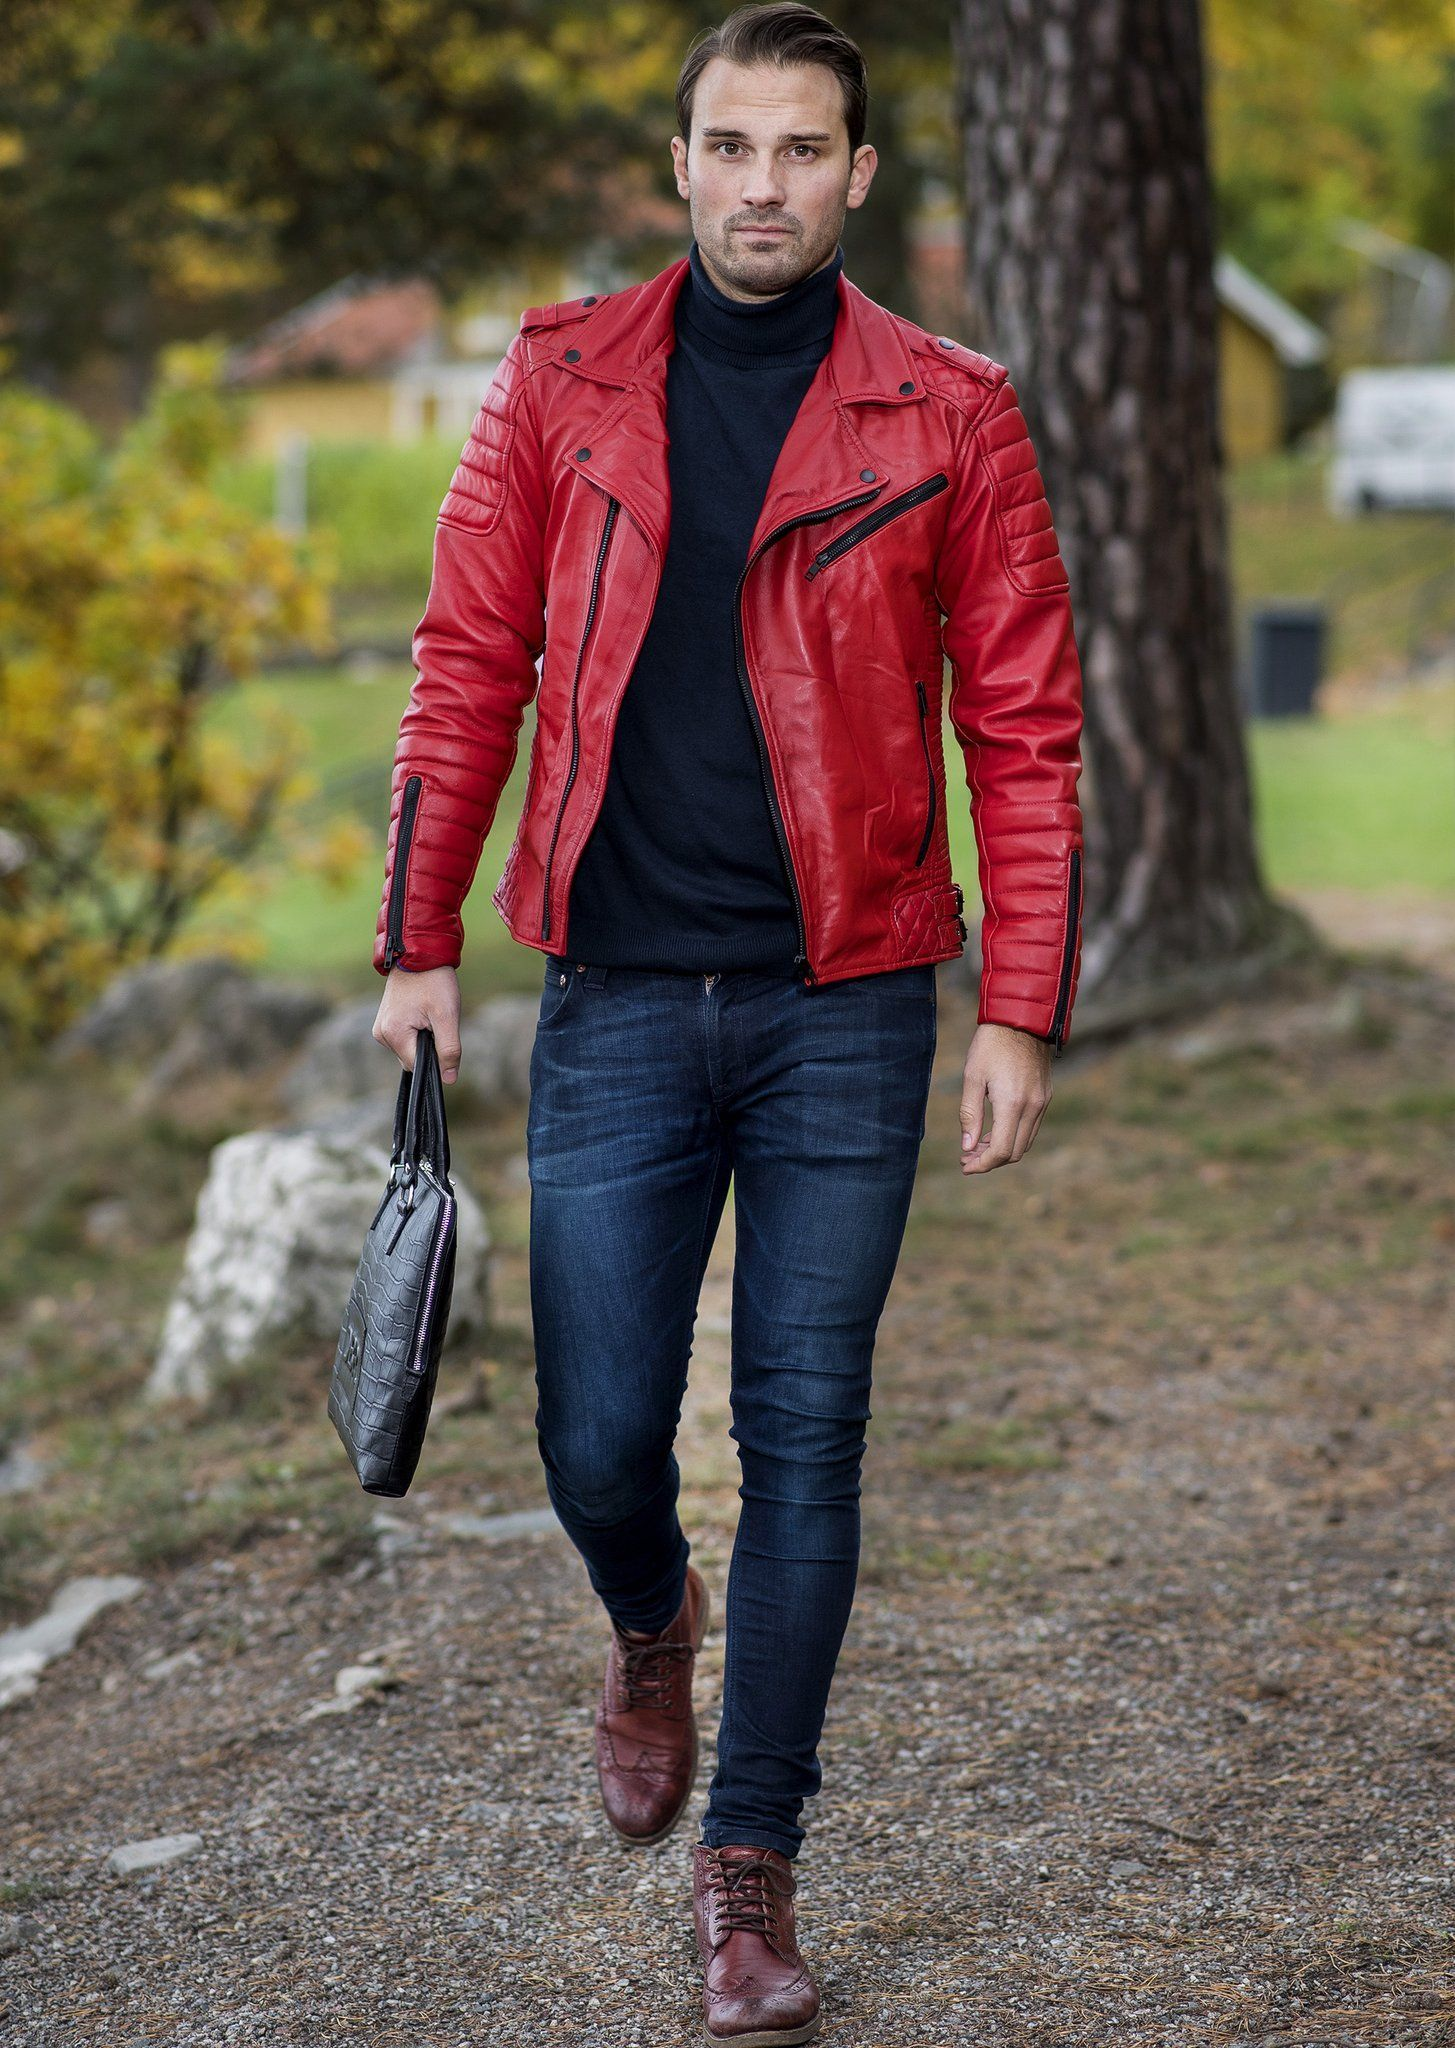 Mjack Red Leather Jacket Difficult By P Leather Jacket Outfit Men Leather Jacket Leather Jacket Men [ 2048 x 1455 Pixel ]